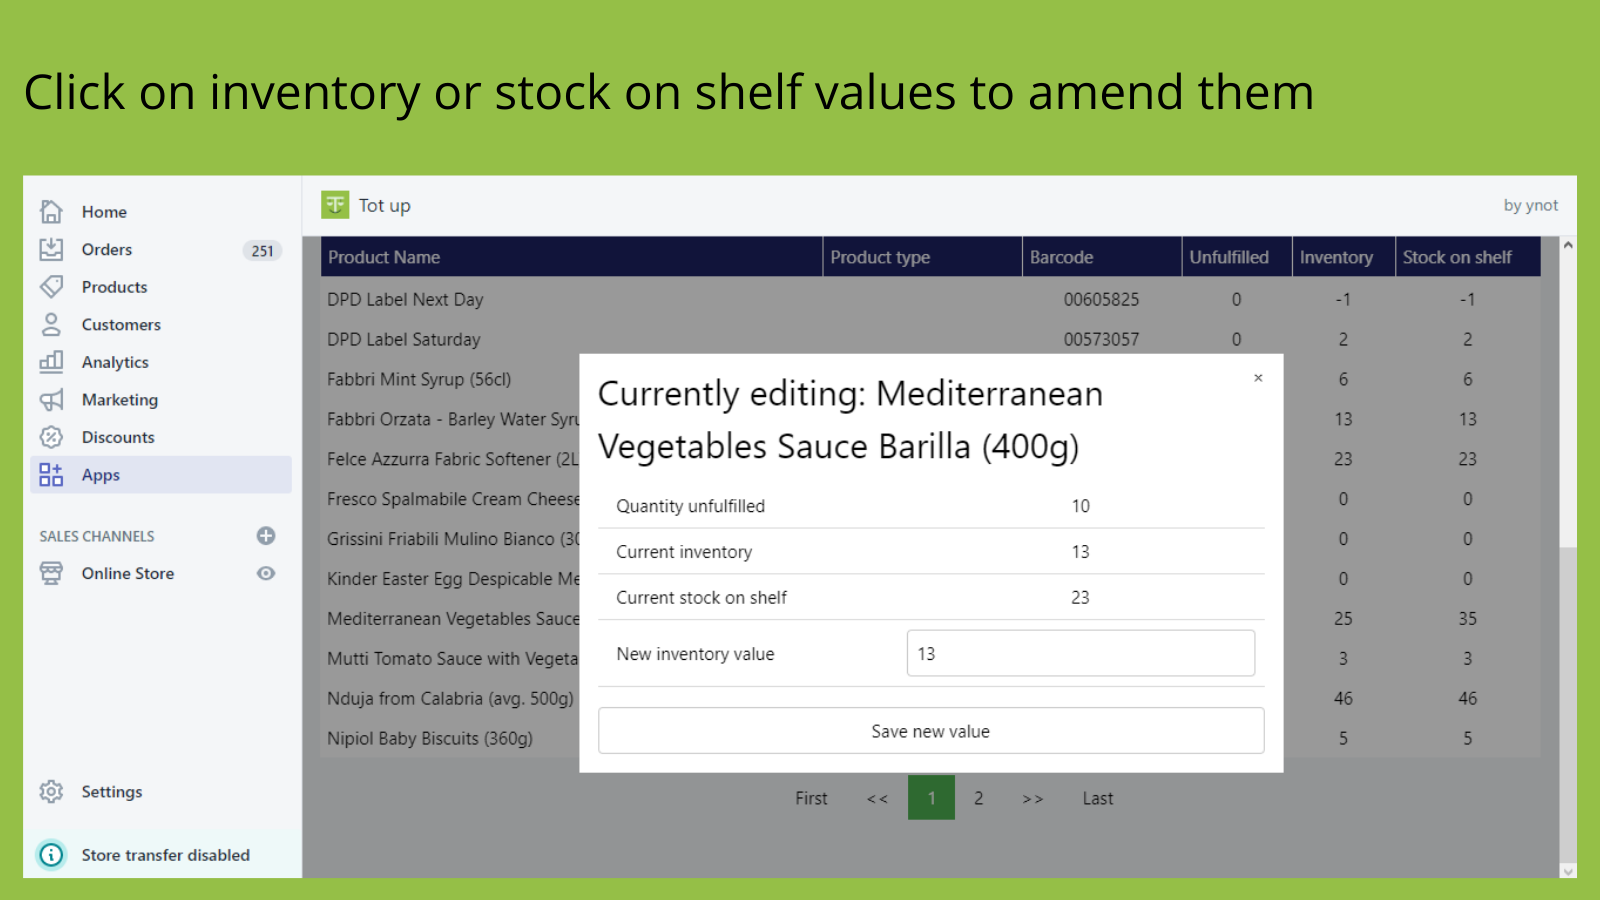 Click on inventory or stock on shelf values to amend them